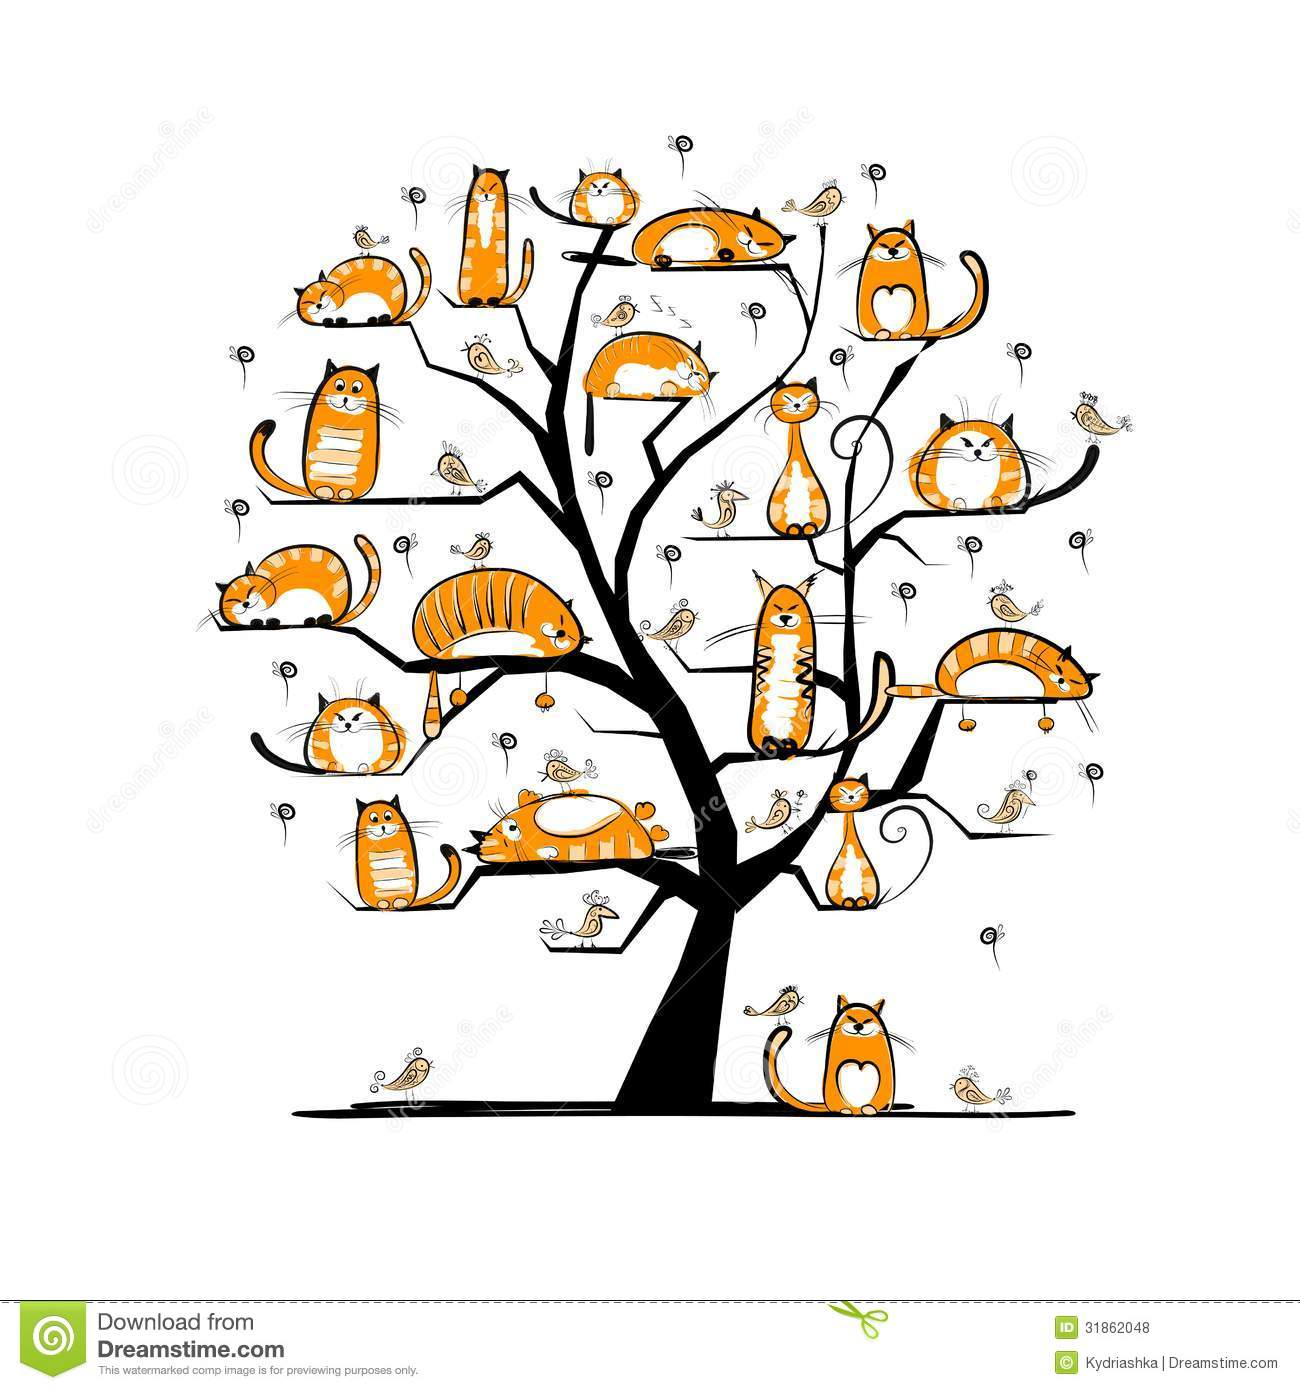 Gallery For gt Cat Family Tree